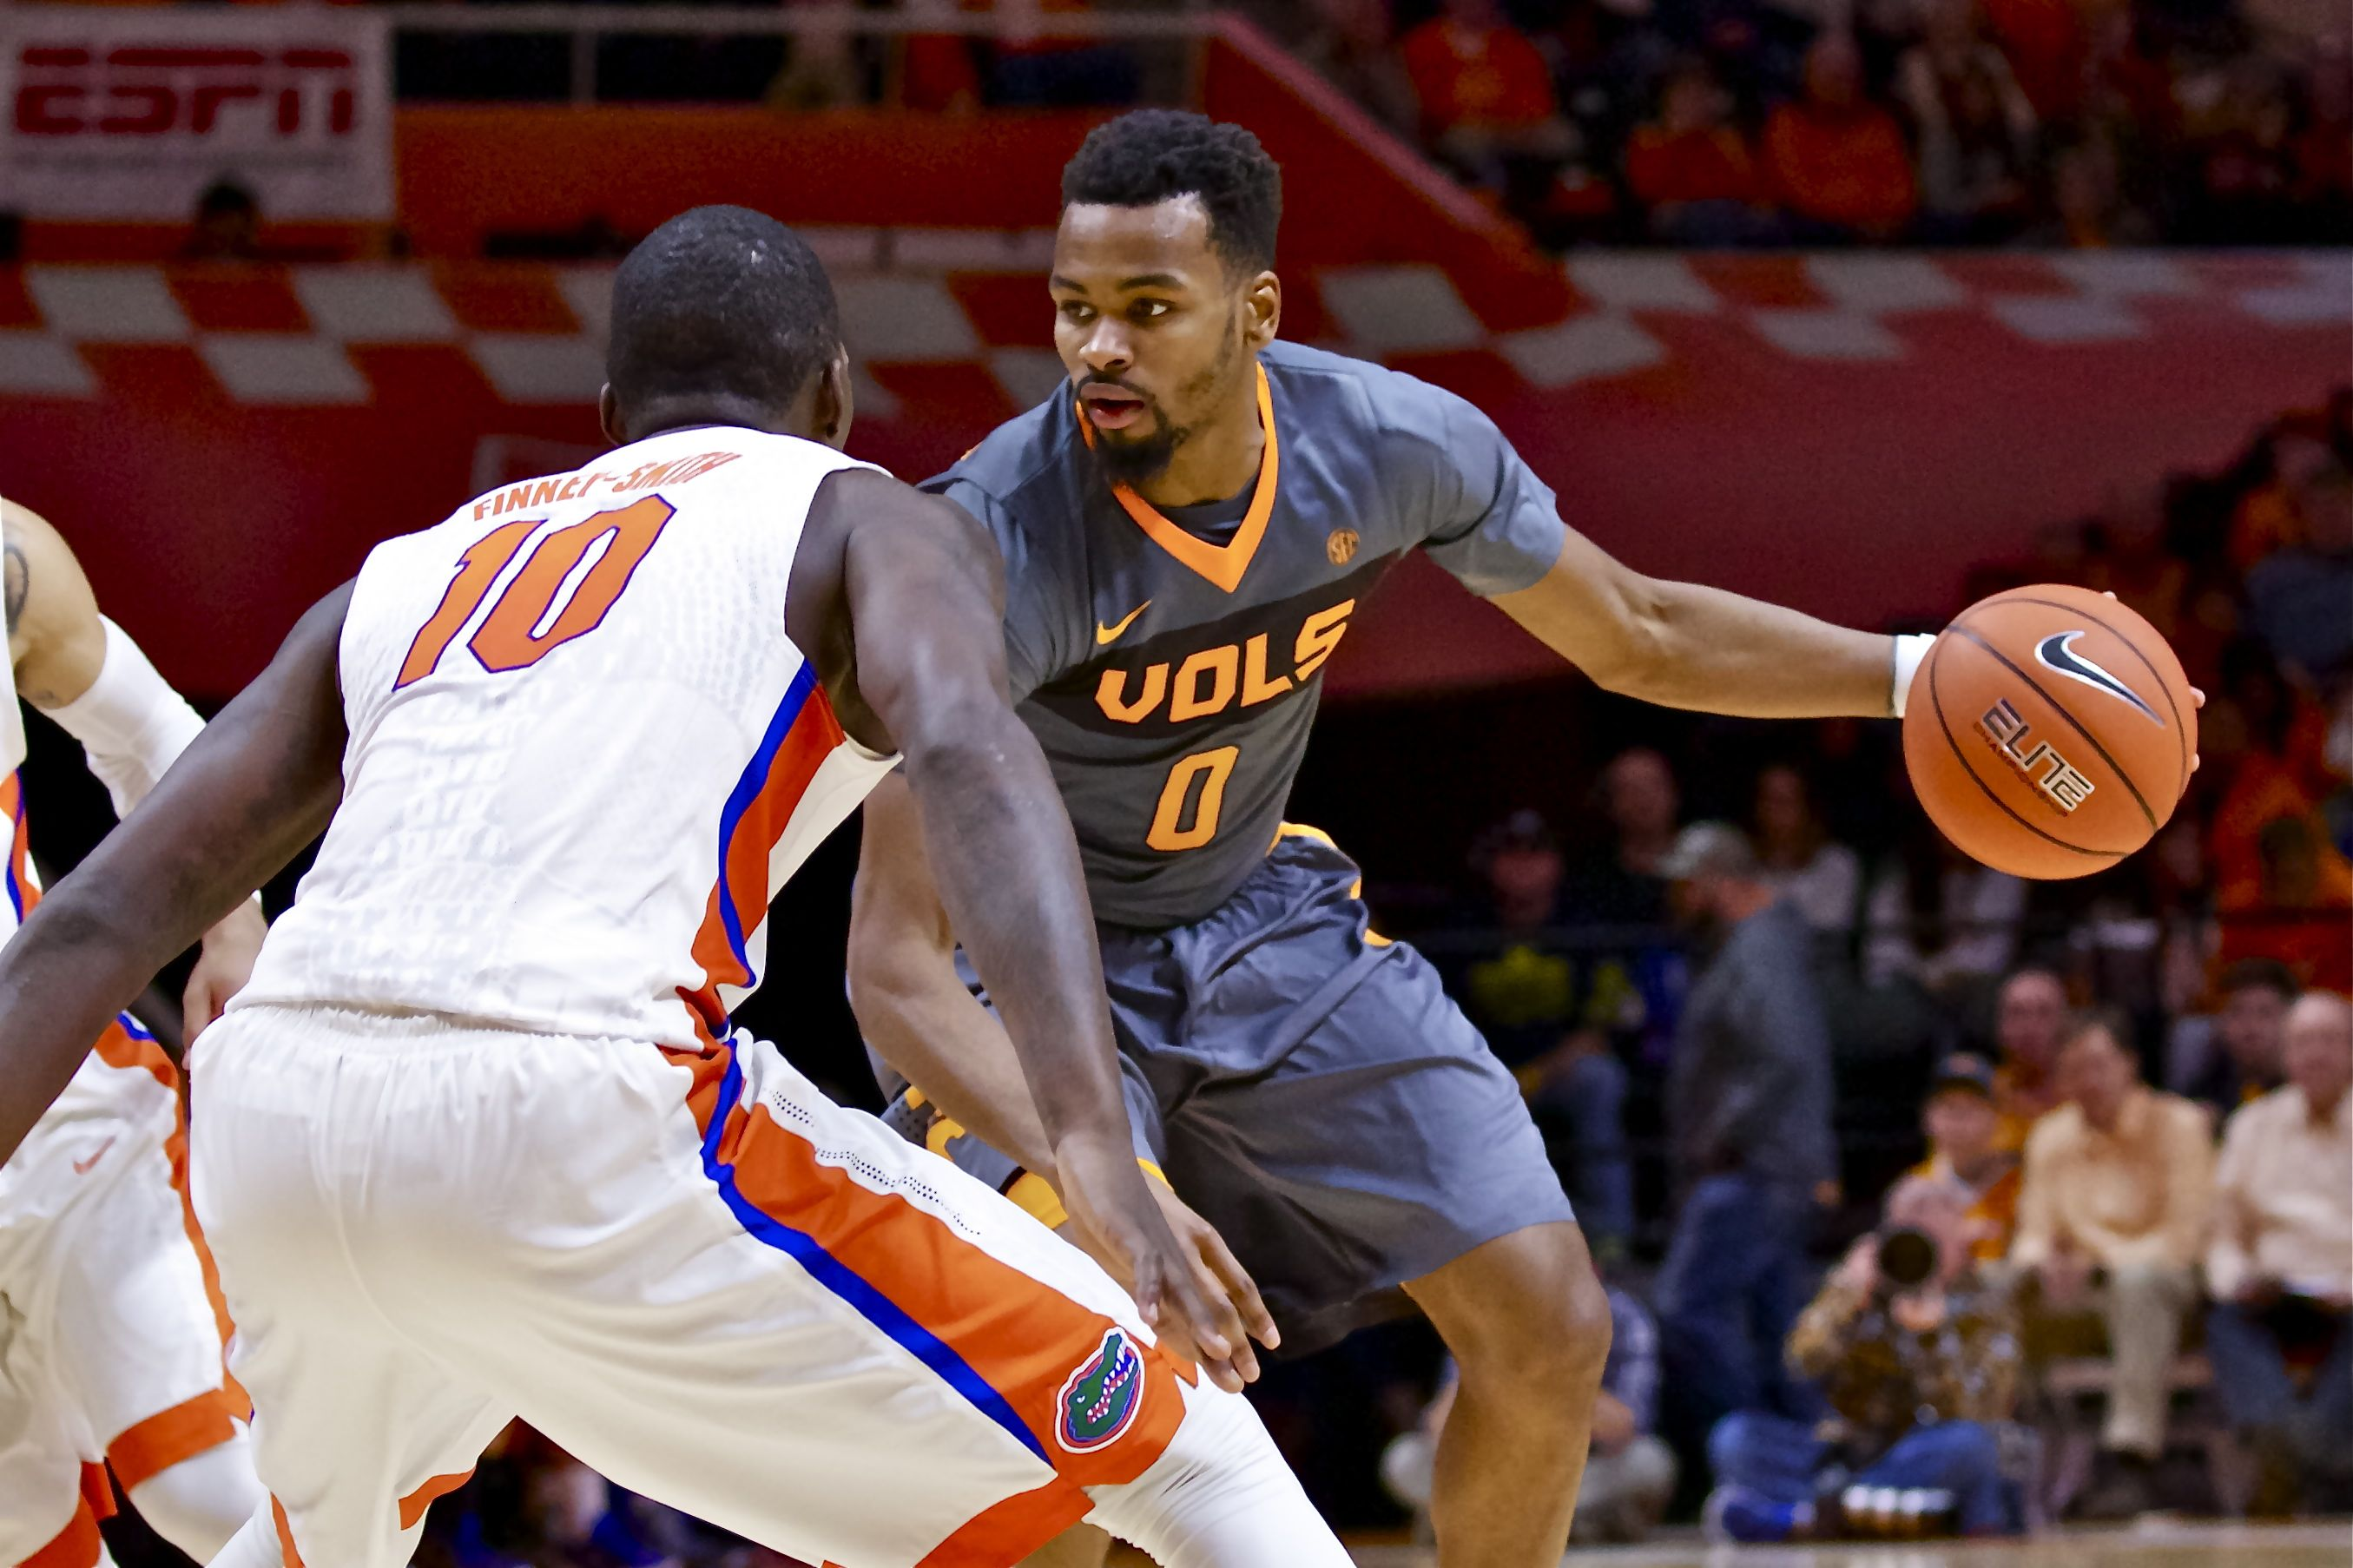 Photo Gallery: Tennessee vs. Florida Basketball Action